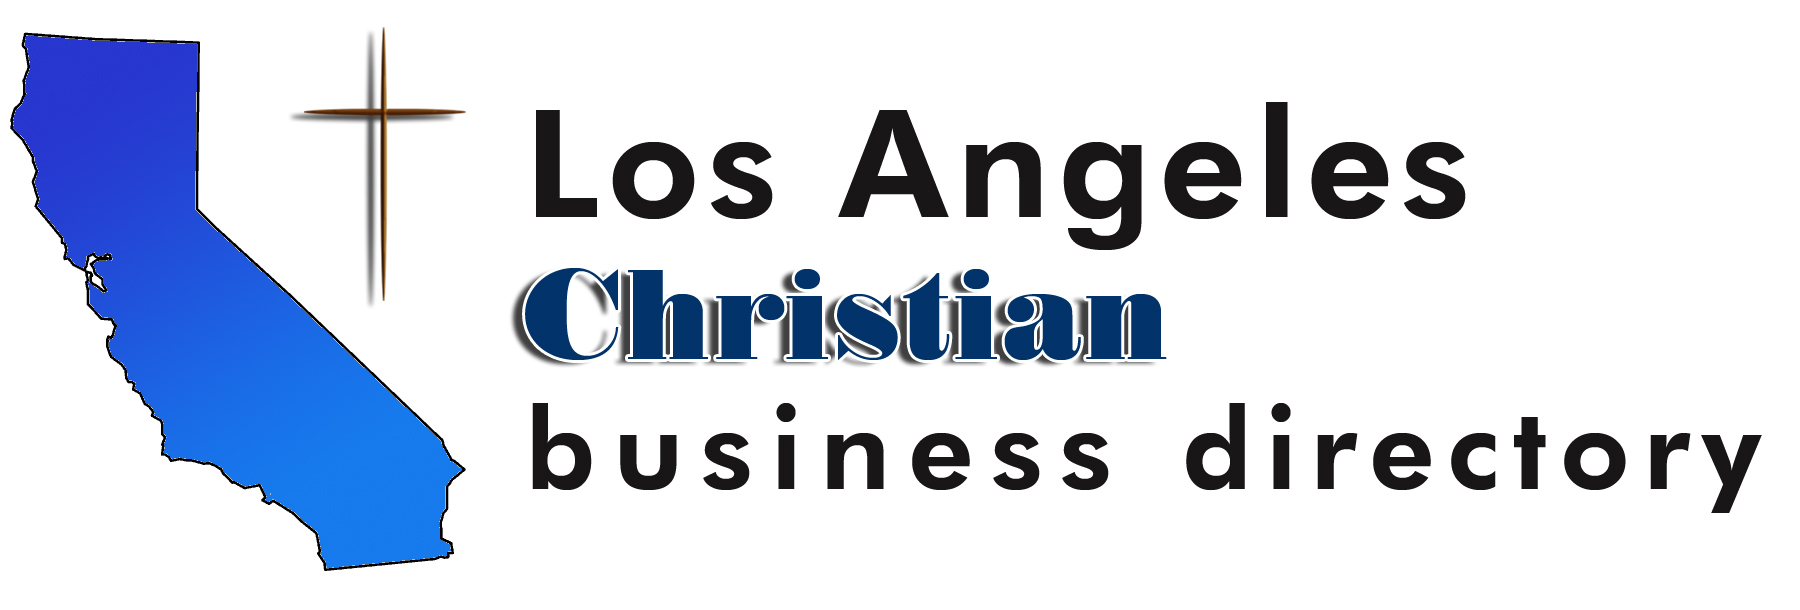 Los Angeles Christian Business Directory